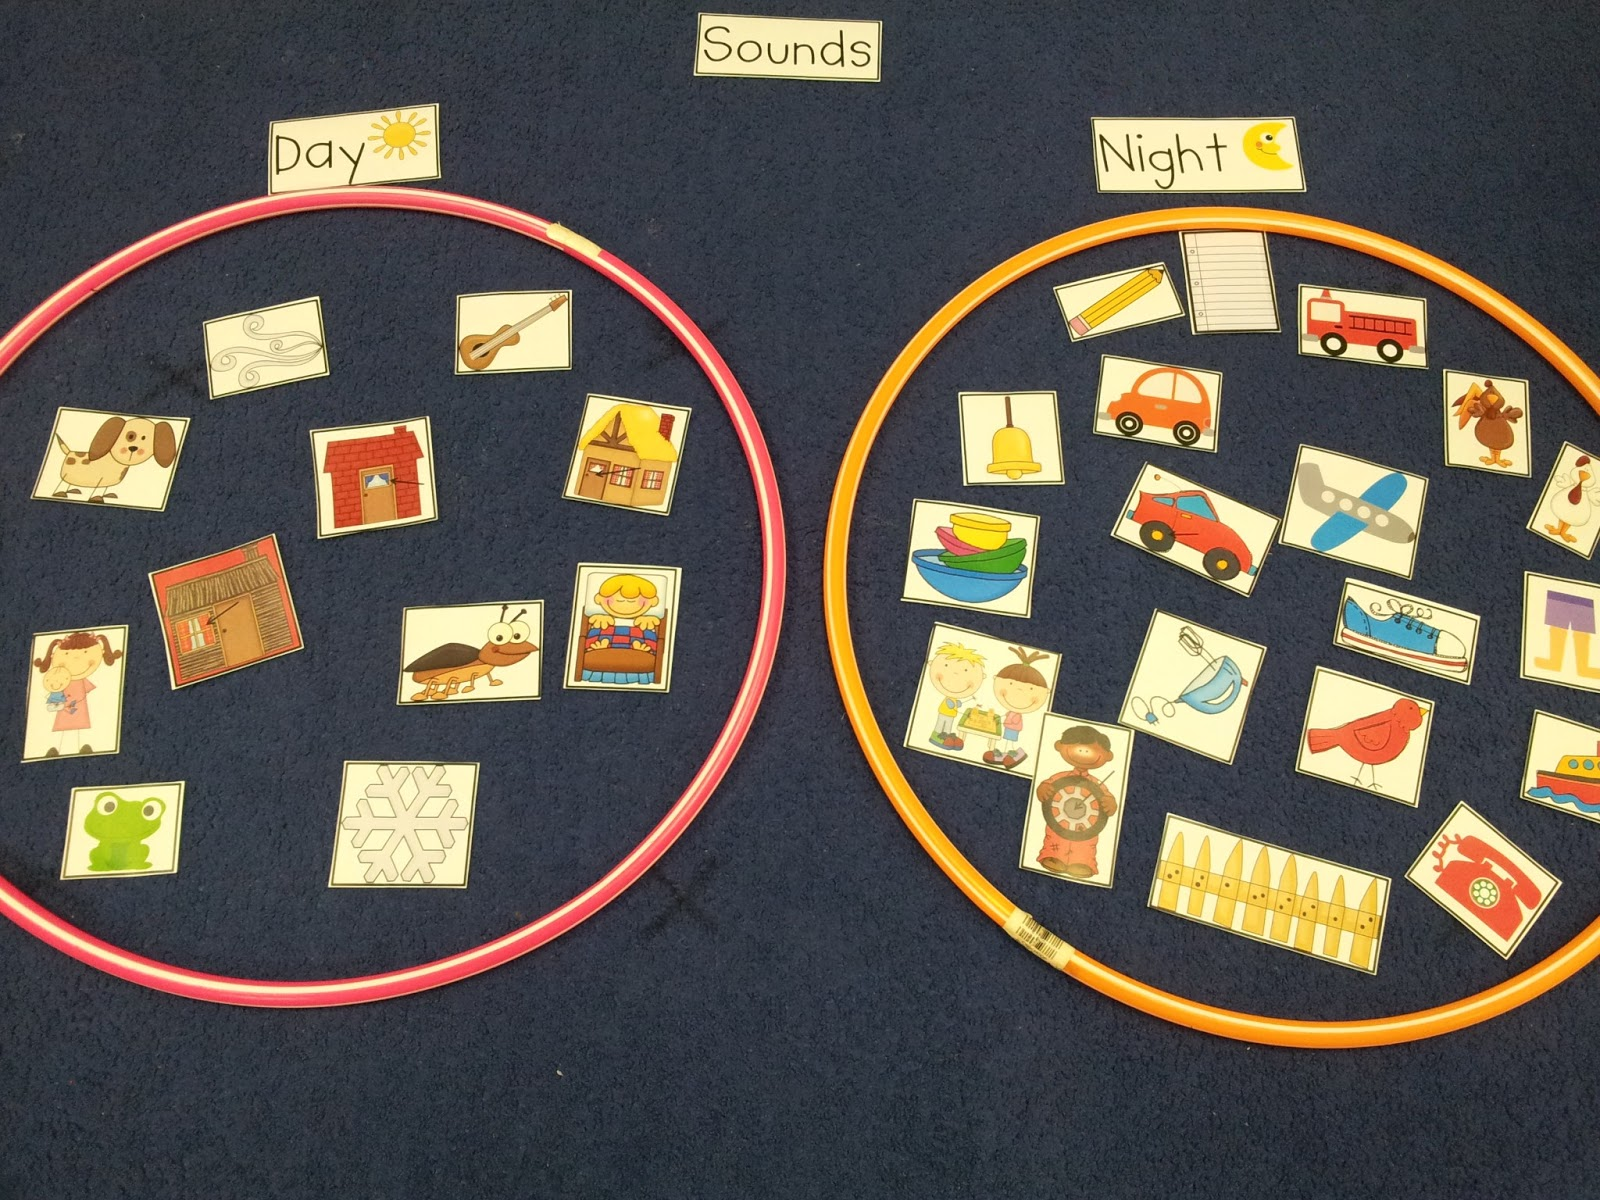 Chalk Talk A Kindergarten Blog The Sound Of Day The Sound Of Night Sort